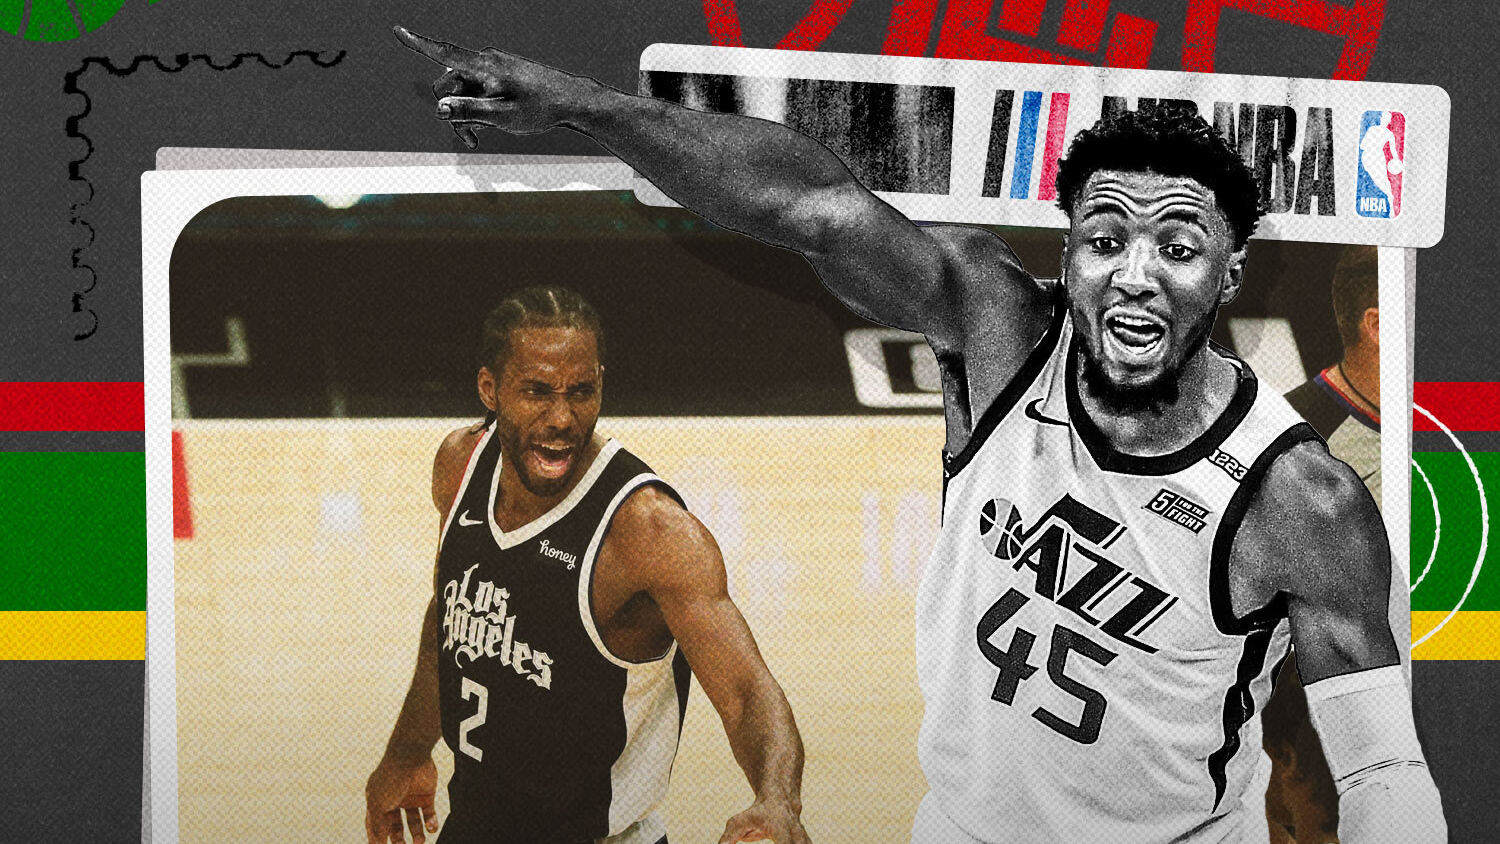 NBA Playoff Top Moments: Clippers vs. Jazz in crucial Game 3